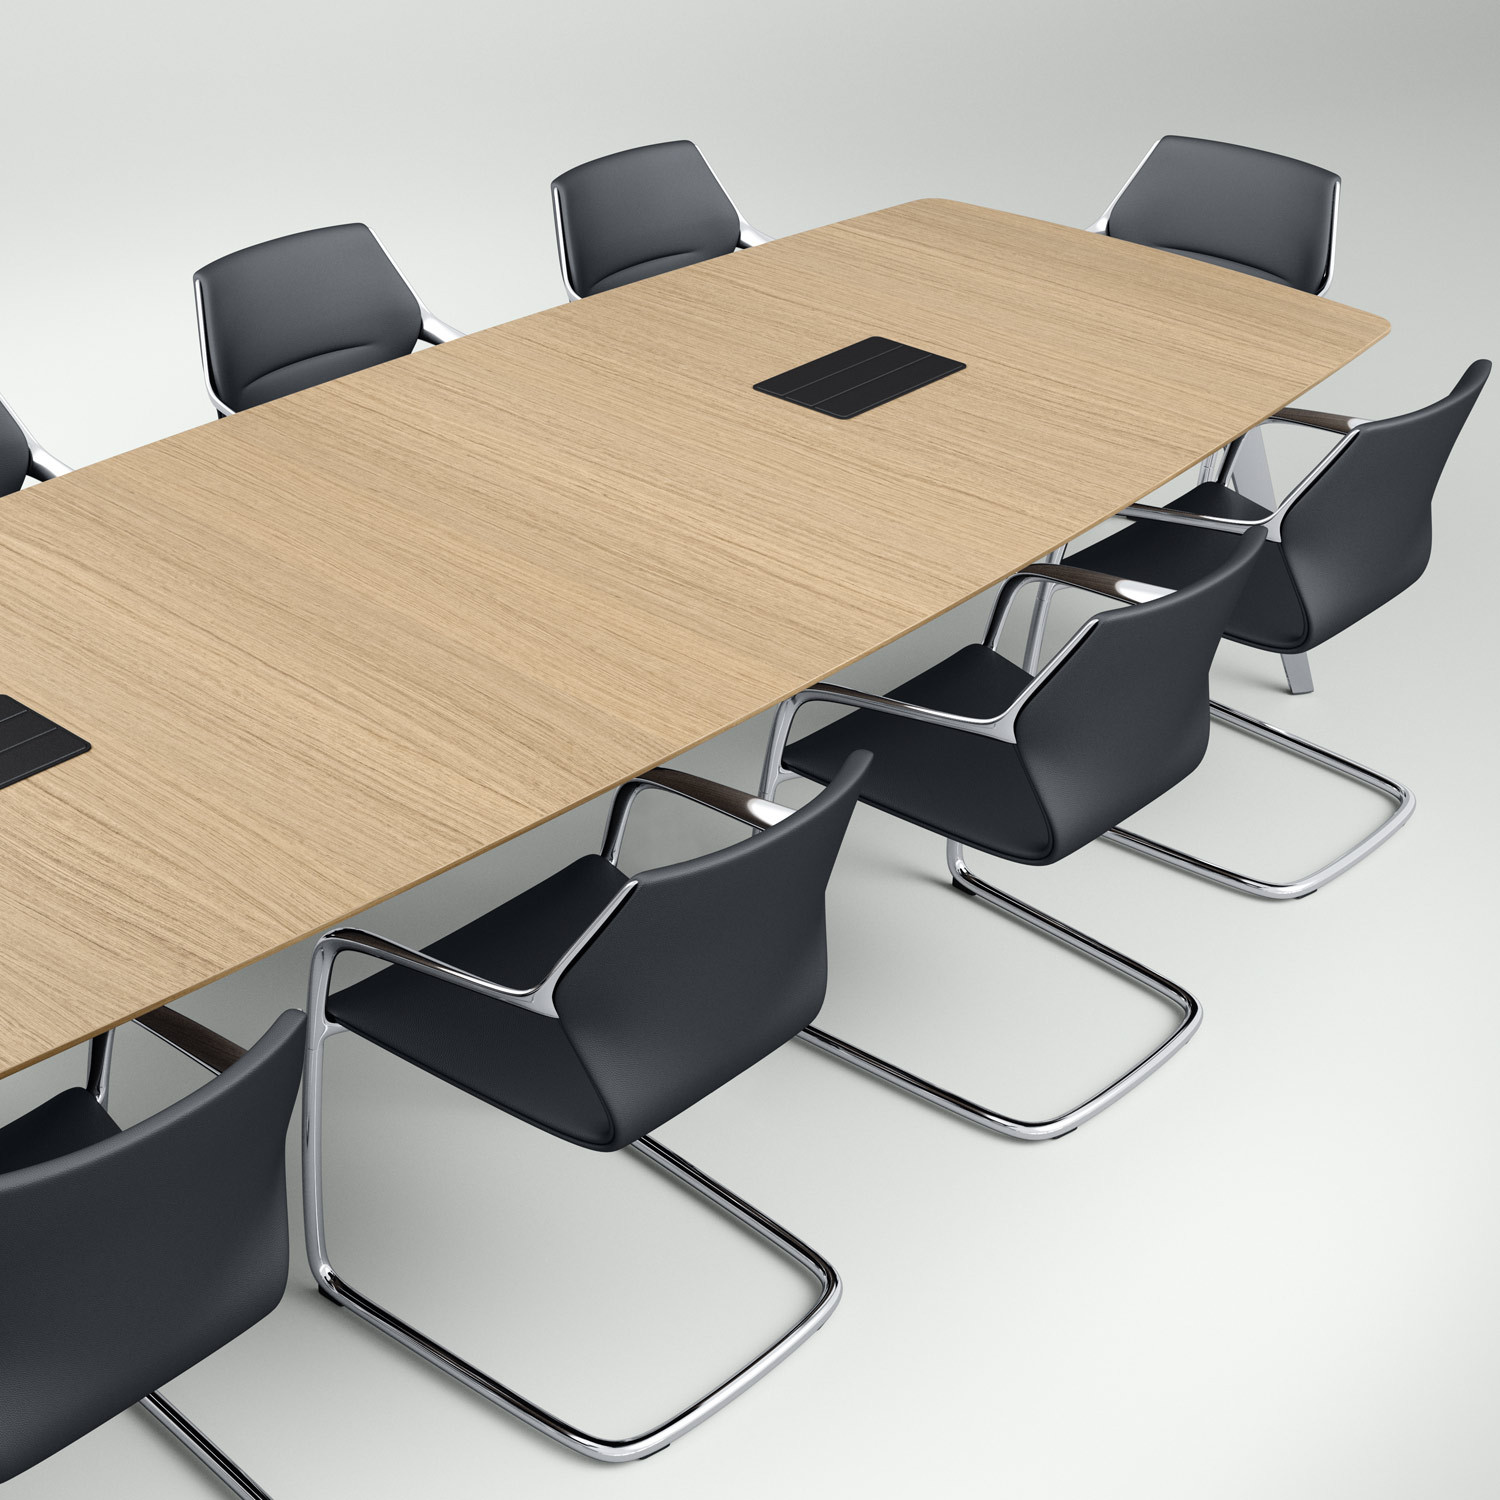 Ray Meeting Table System